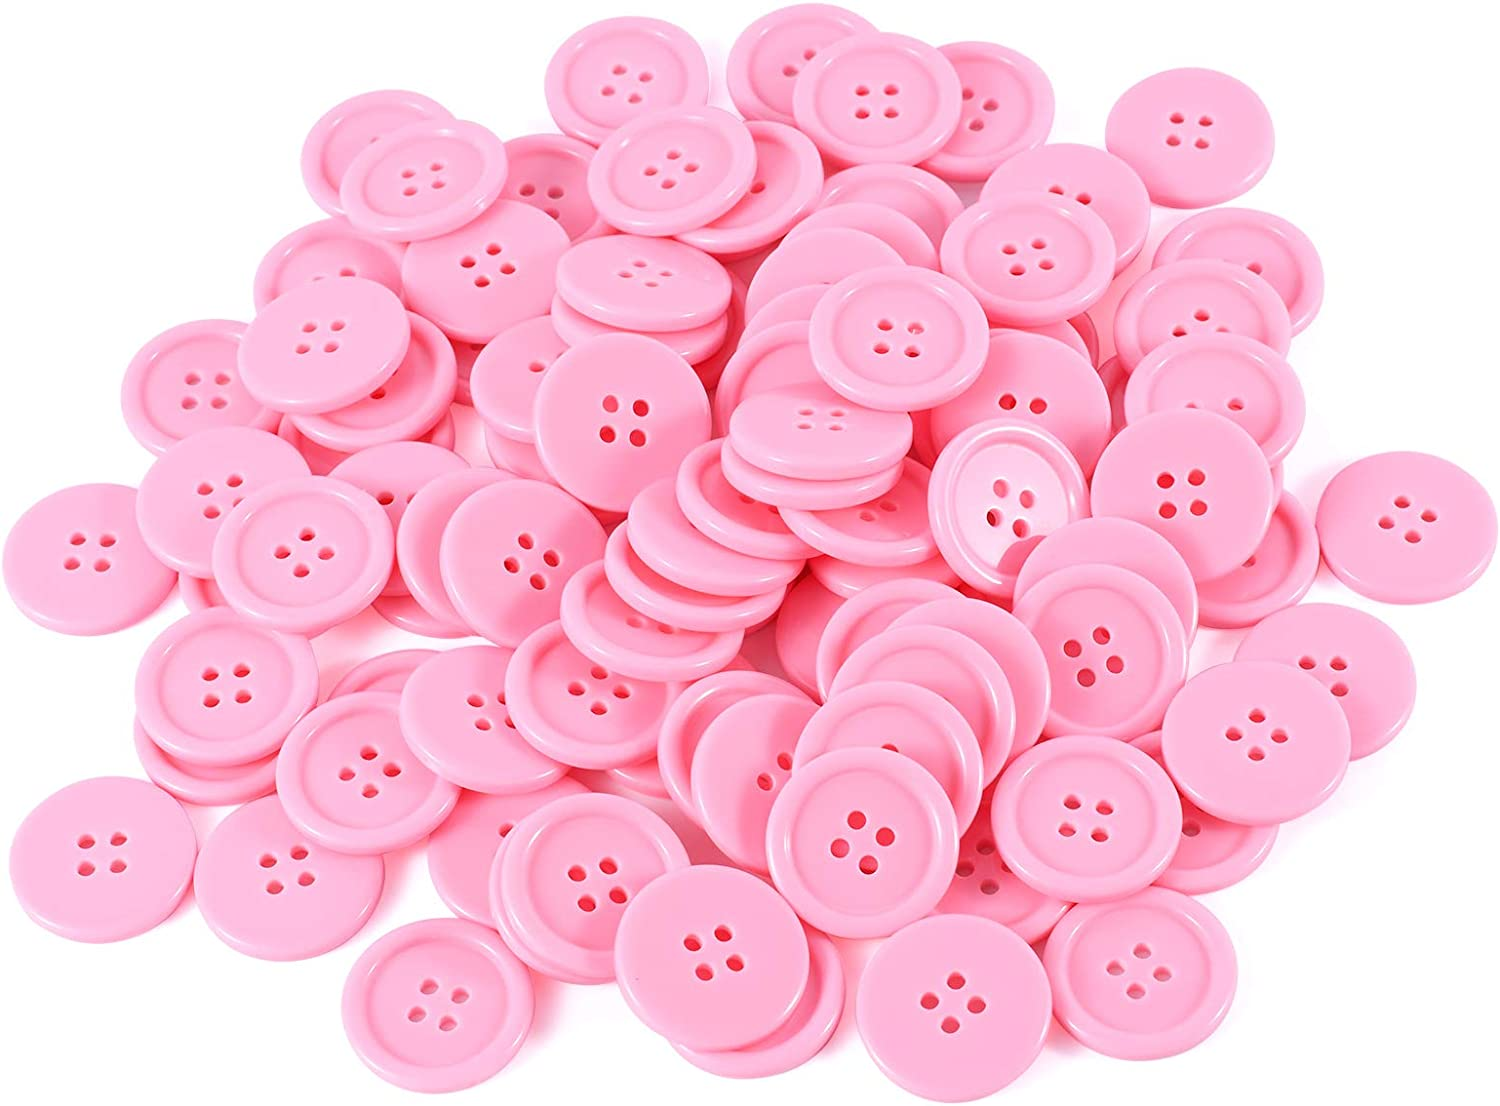 TAILINB 1 Inch Buttons for Sewing Resin Button, 4 Holes Round Craft Buttons for Sewing, DIY Crafts, Children's Manual Button Painting, Pink Colored Pack of 100